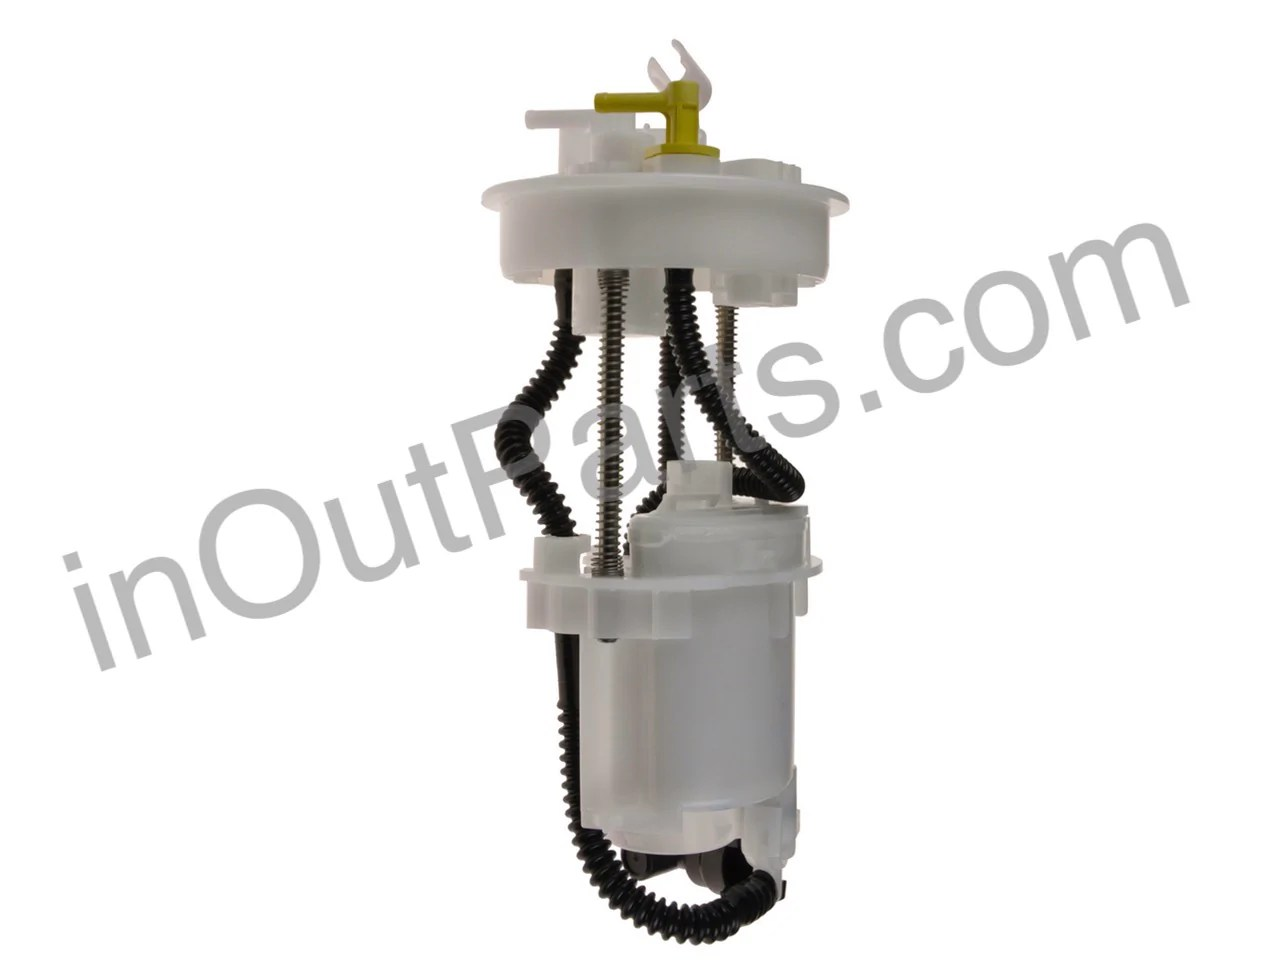 hight resolution of fuel filter fits honda fit jazz 2002 2003 2004 2005 2006 2007 2008 inout parts